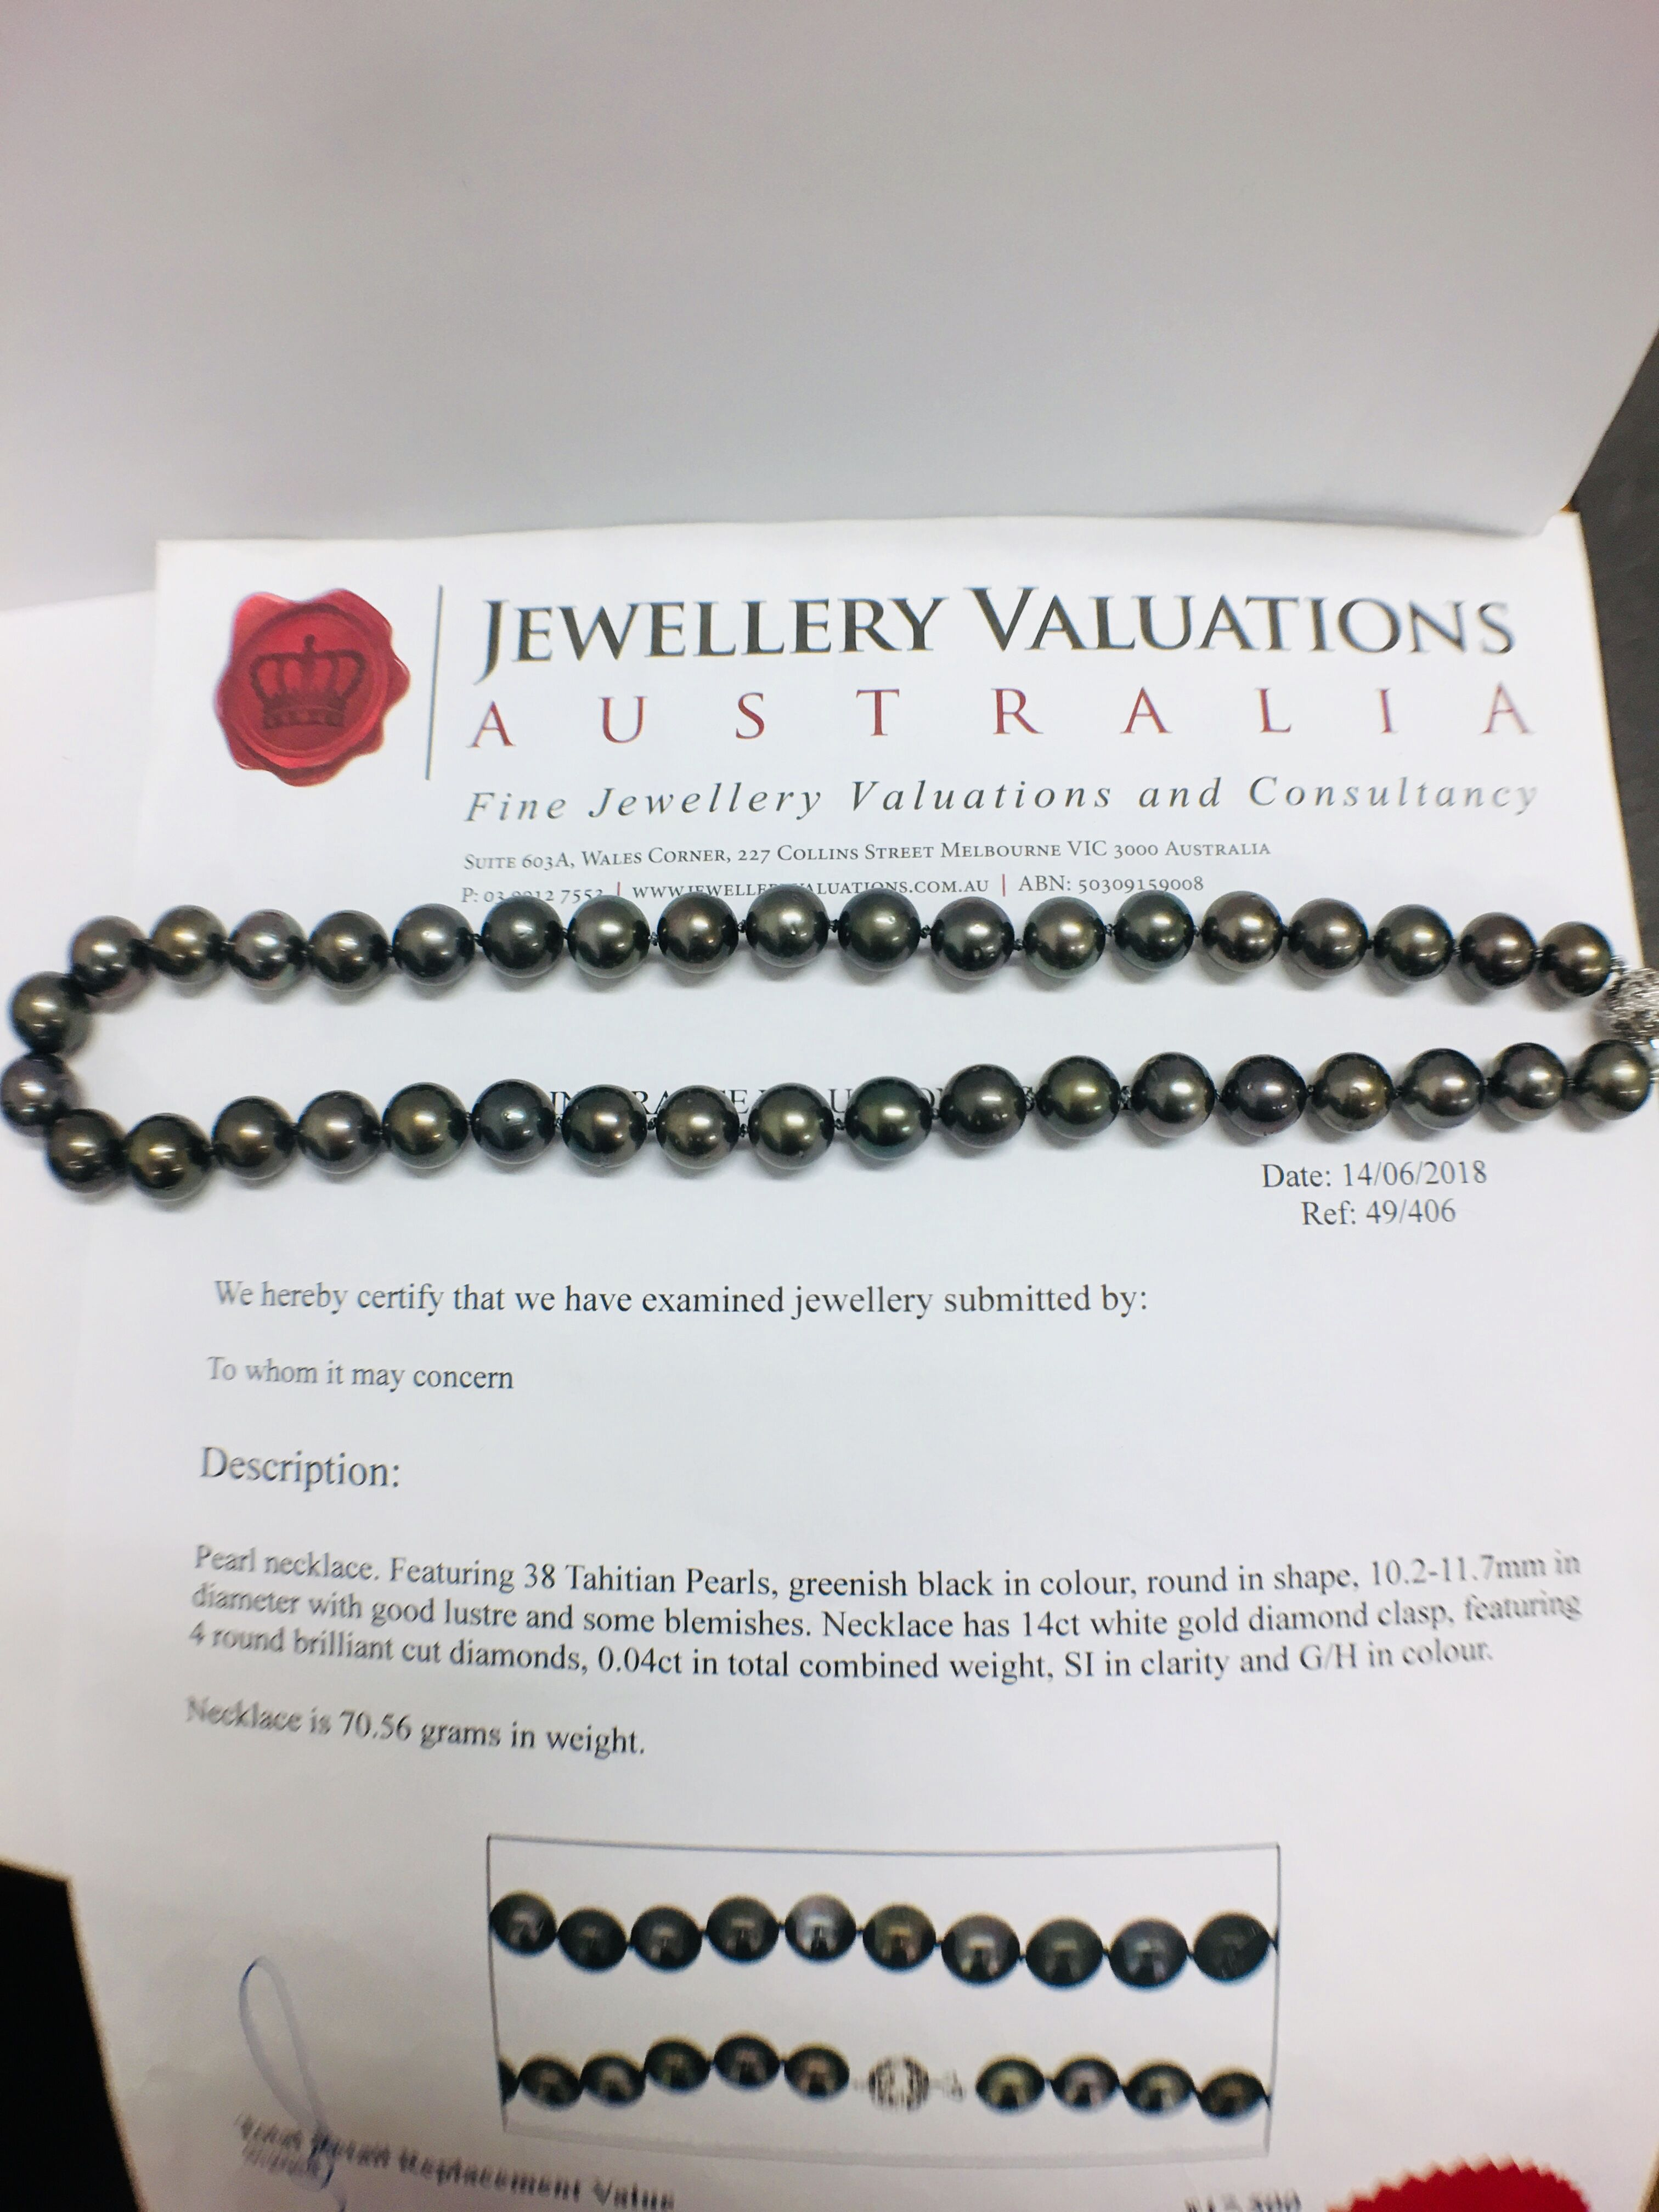 tahitian pearl necklace. - Image 9 of 9